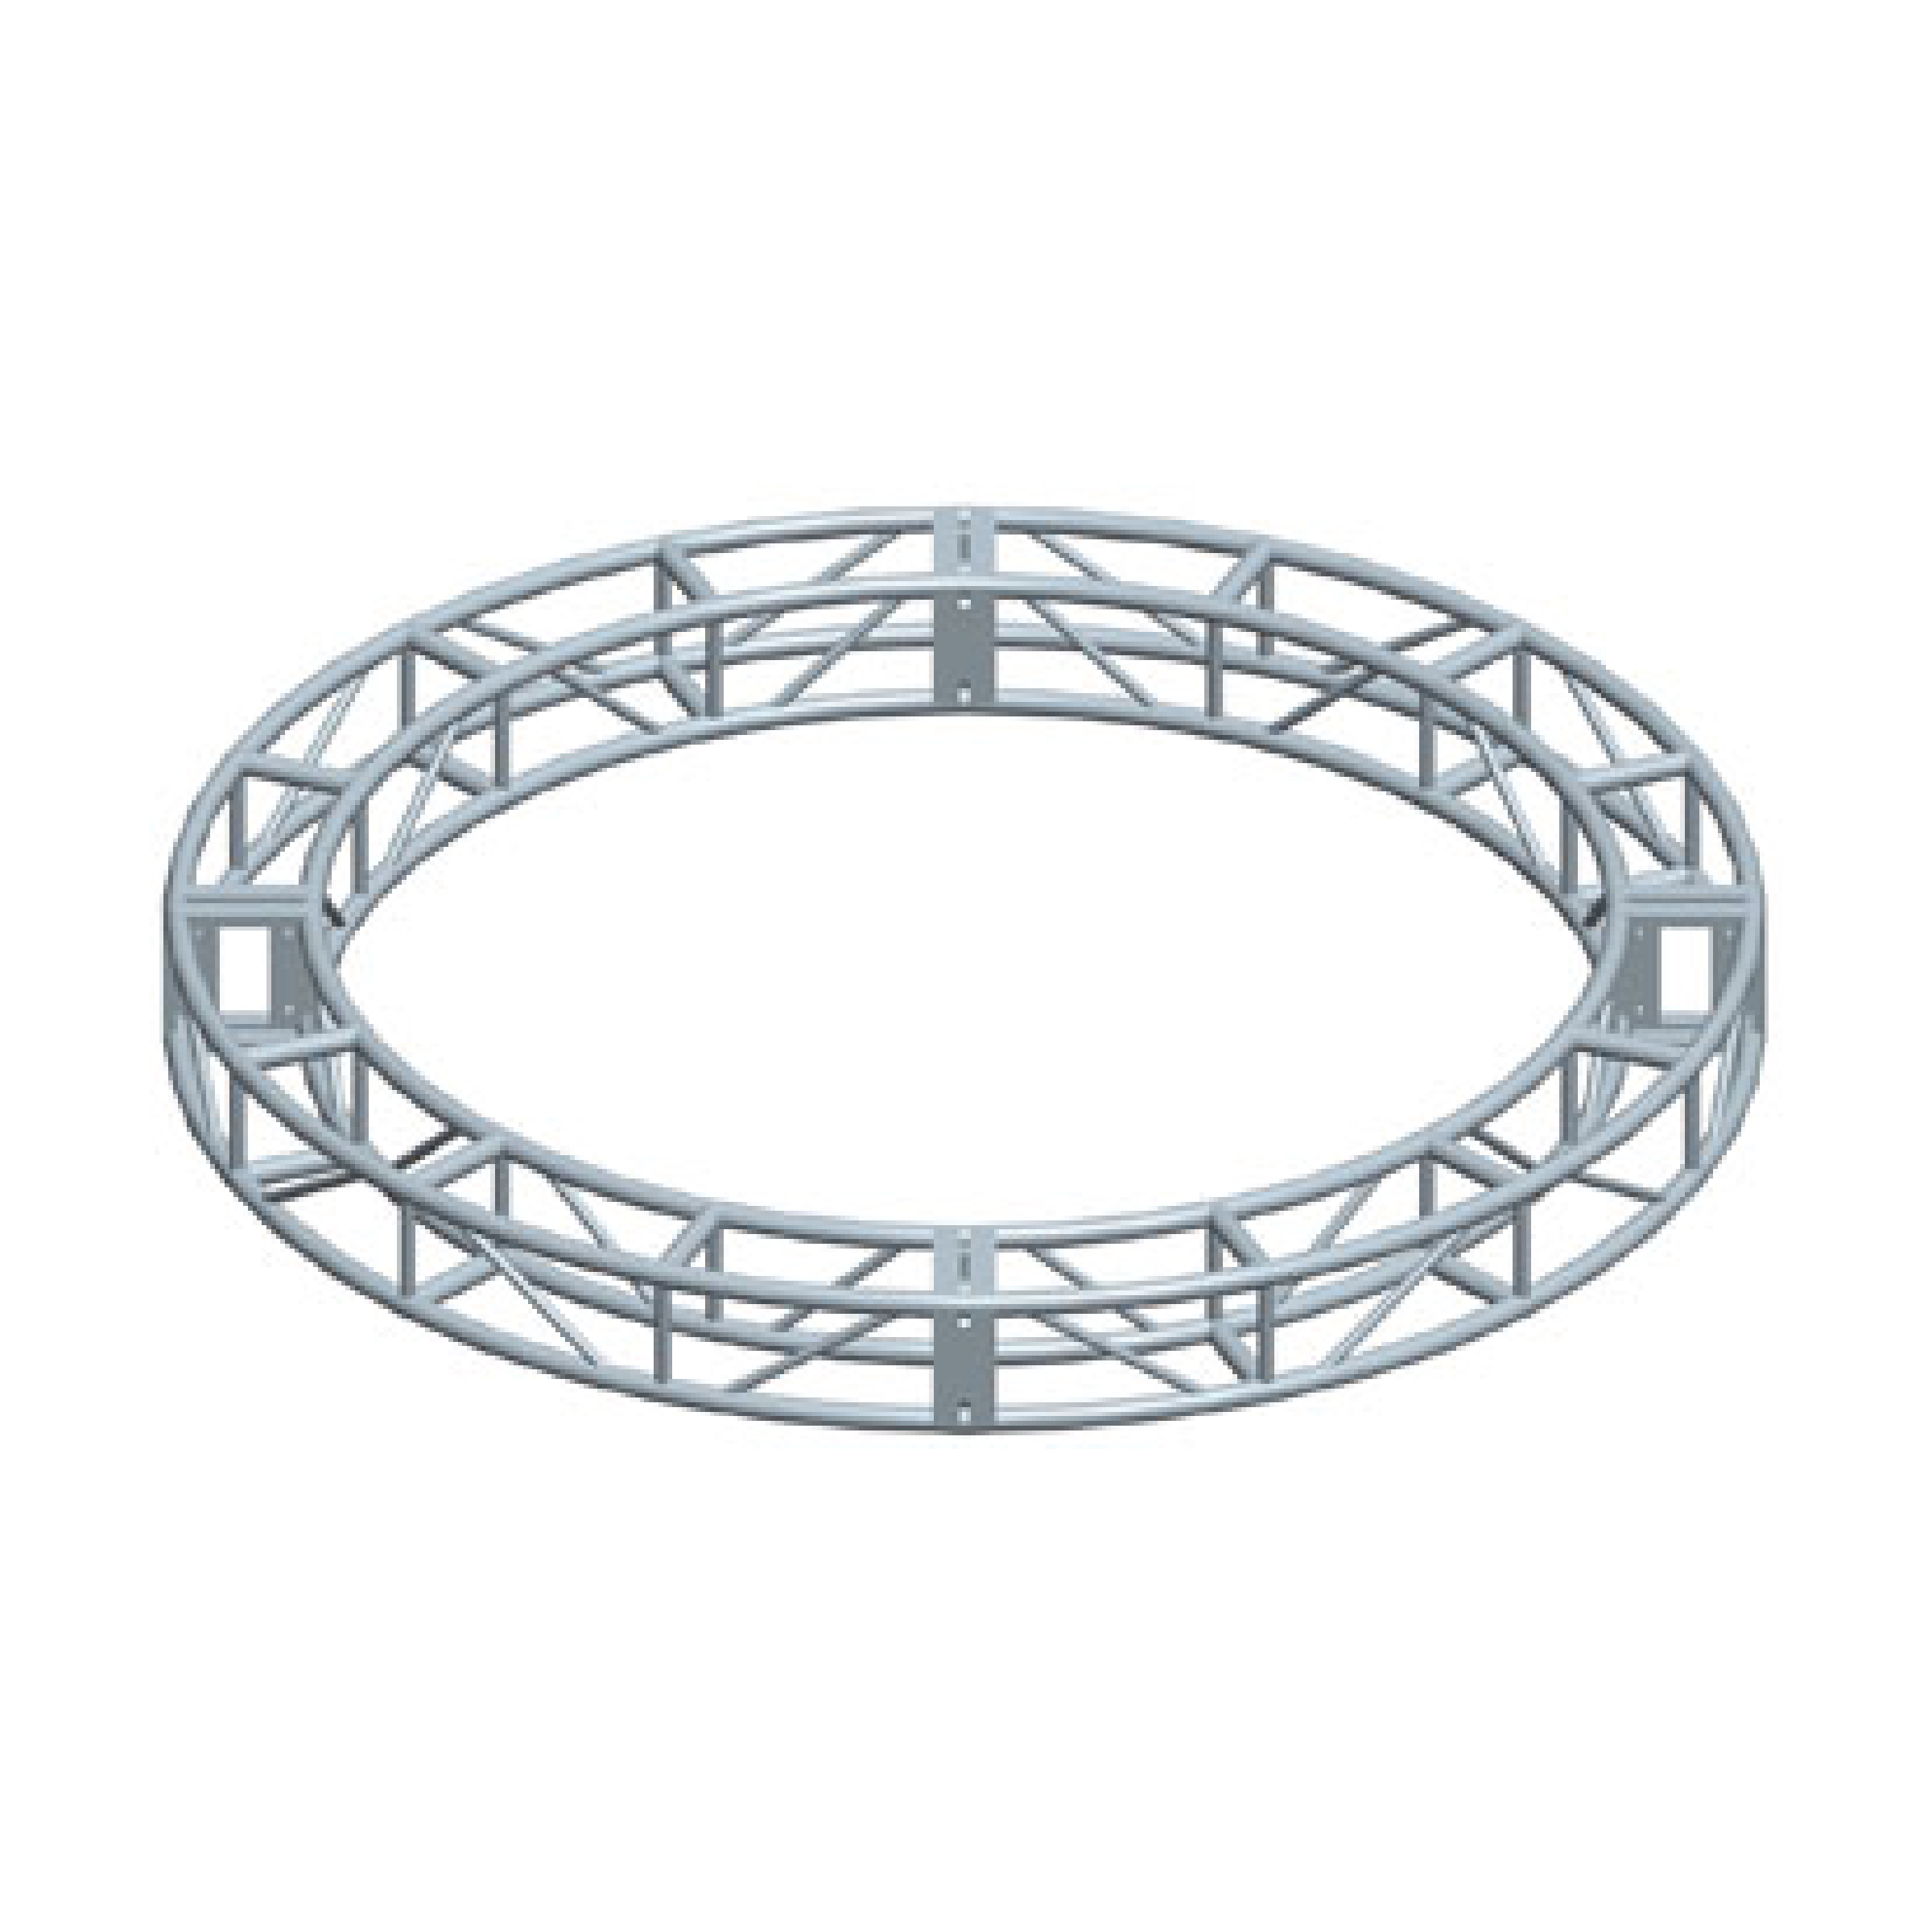 12 x 12] 16'OD Silver Box Truss – Global Trend Productions